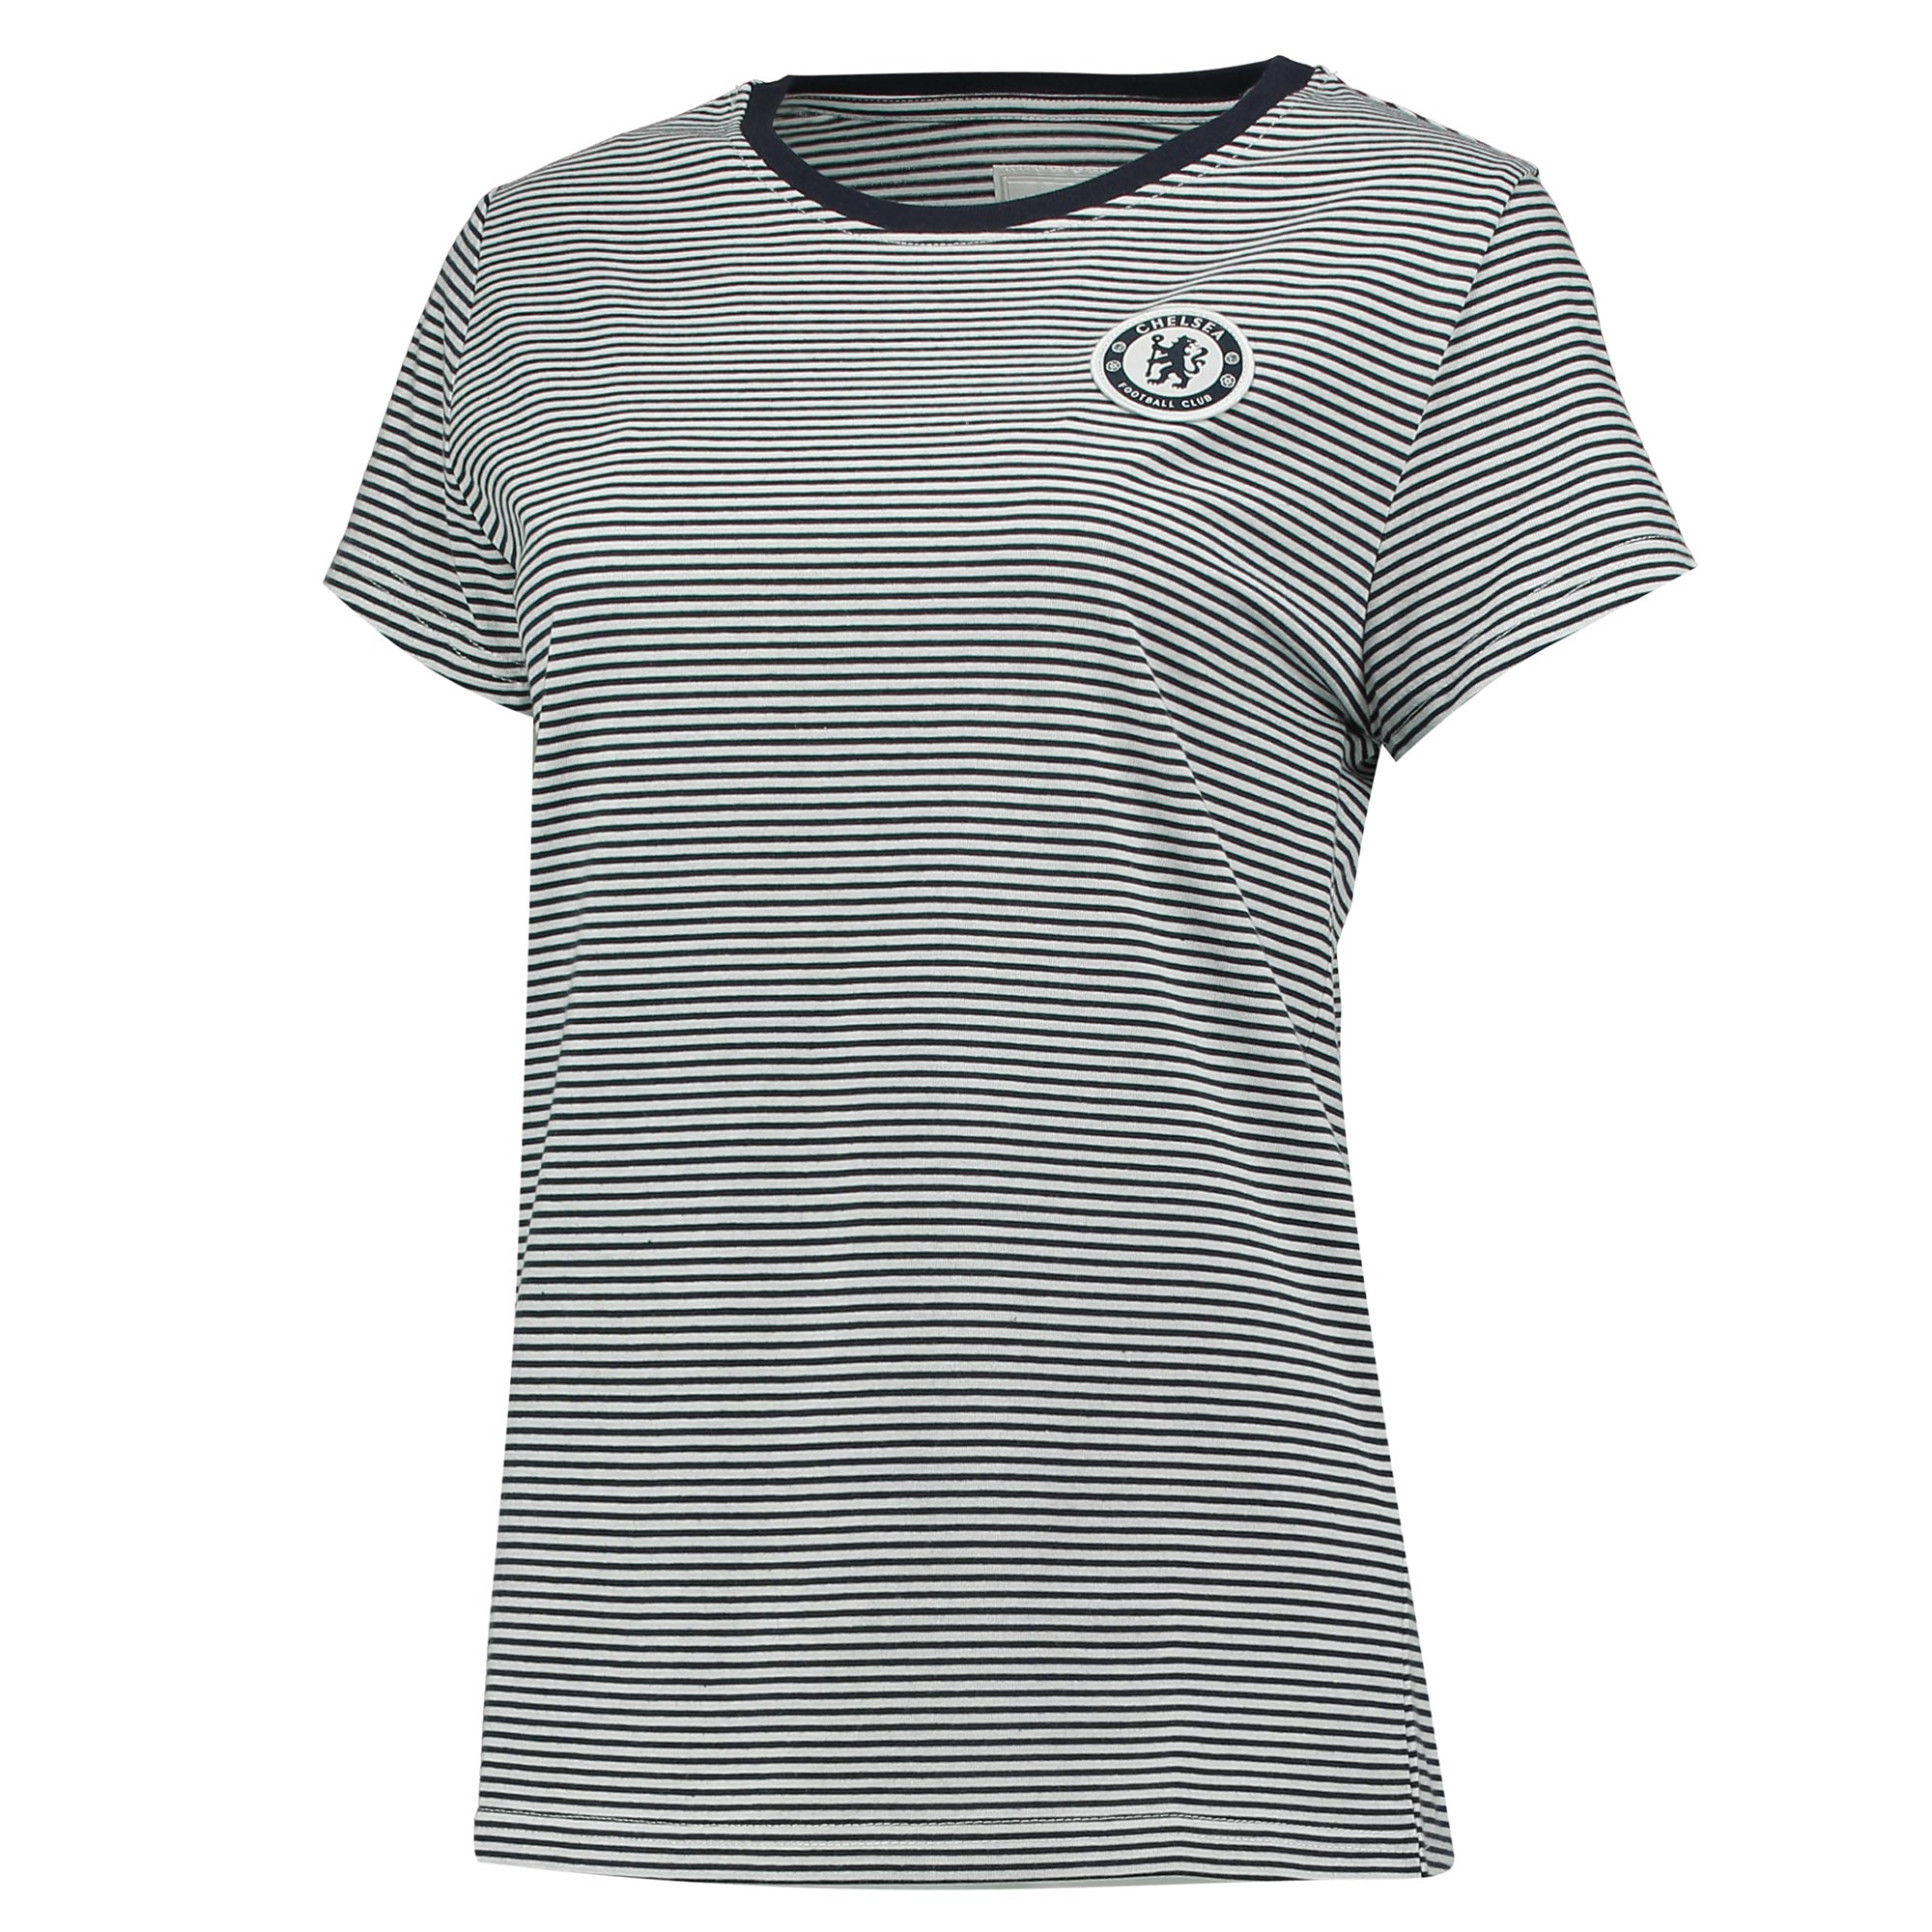 Chelsea Stripe T-Shirt - Navy – Women's   This stylish Chelsea Stripe T-Shirt is the ideal choice for fans of The Blues who want to cheer on their team whilst looking stylish and feminine.   With a woven crest badge and striped design, this tee is perfect whether you're watching the game from home or cheering on the boys at Stamford Bridge.   Details: • Fabrication: 65% polyester 35% cotton • S/Jersey 180gm (silicon wash) • Application: Woven Crest Badge